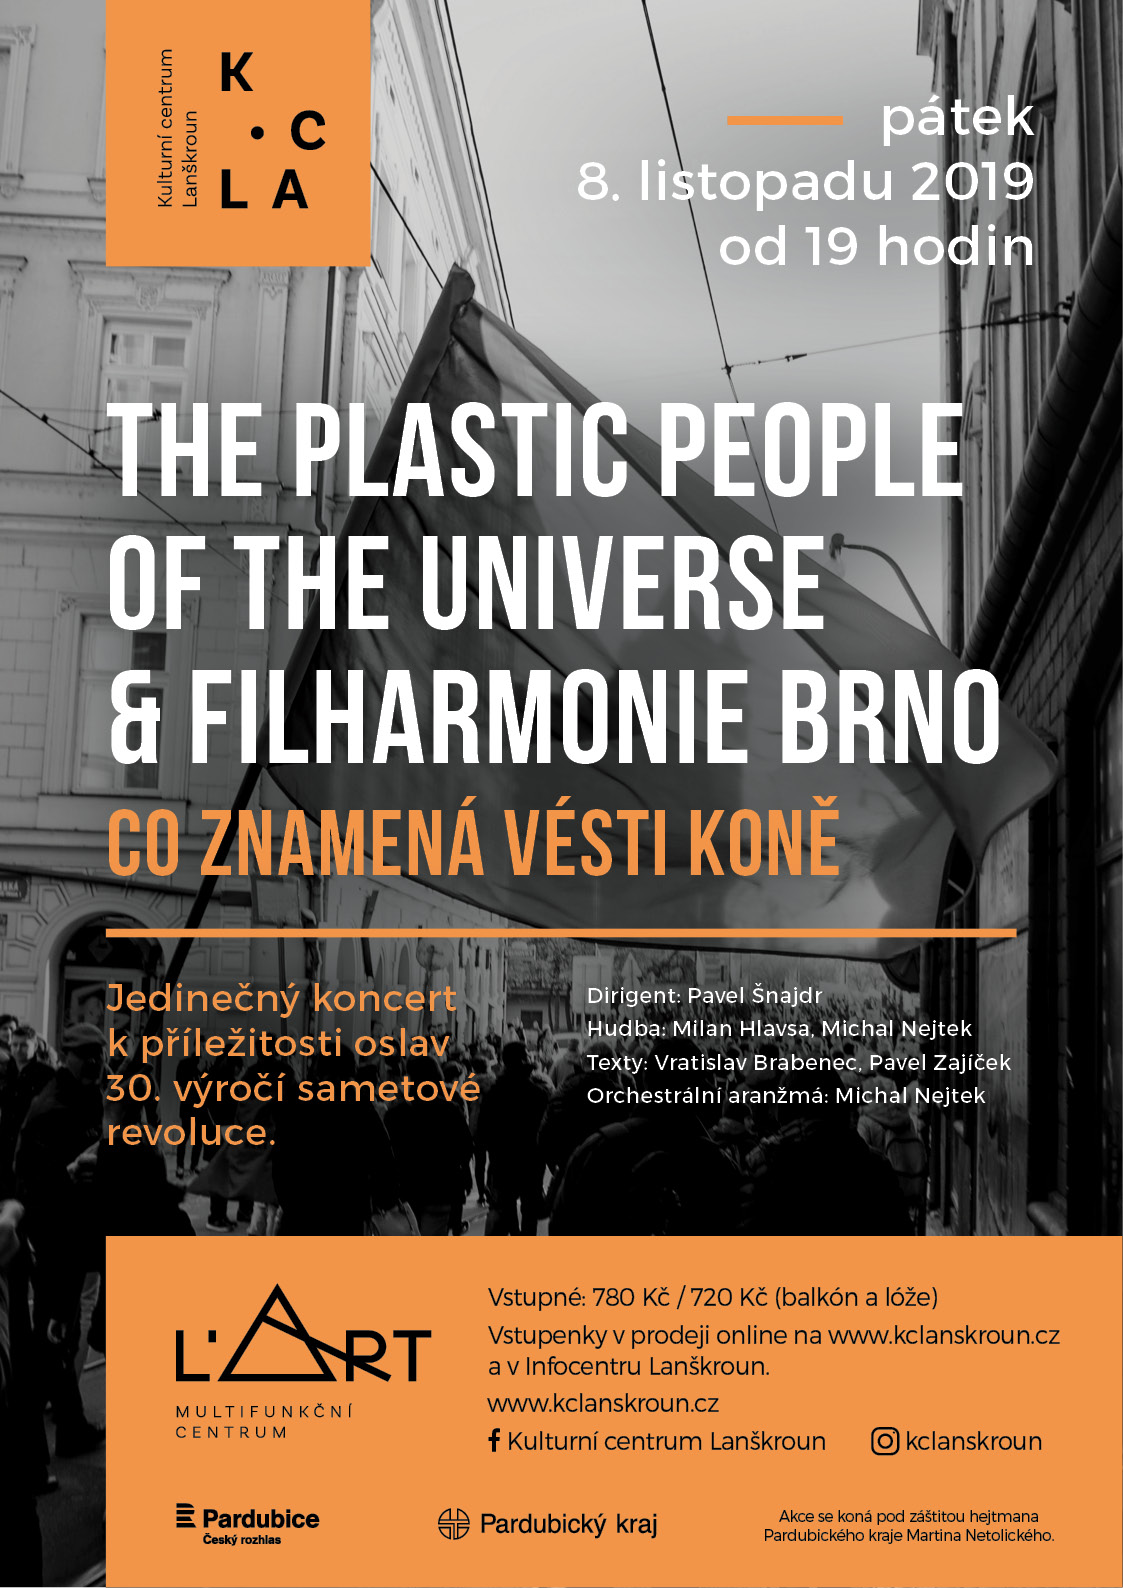 Co znamená vésti koně - The Plastic People of the Universe a Filharmonie Brno - Lanškroun - 8.11.2019